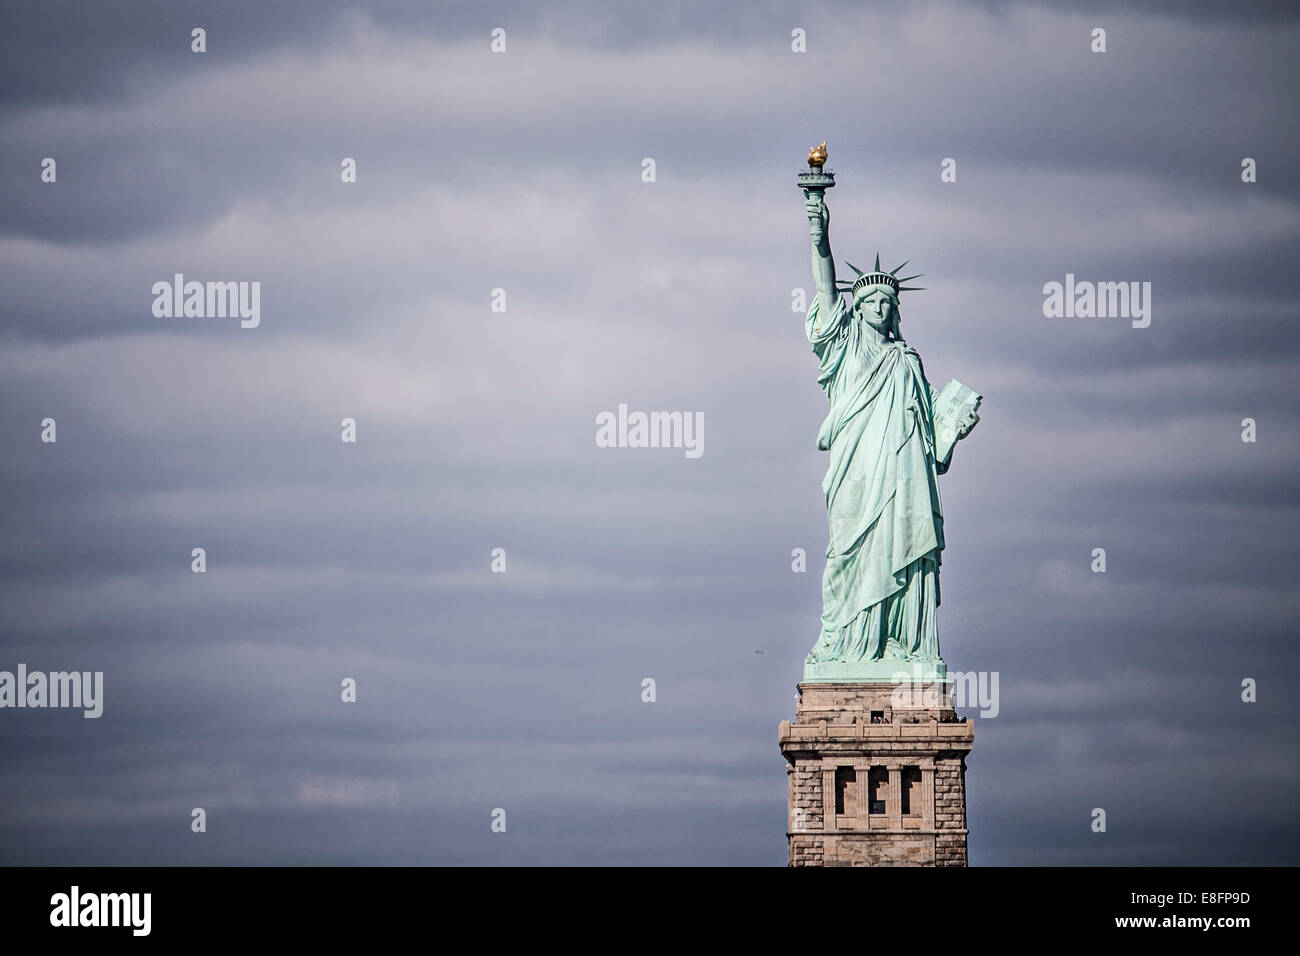 Statue de la liberté, New York, Amérique, USA Photo Stock